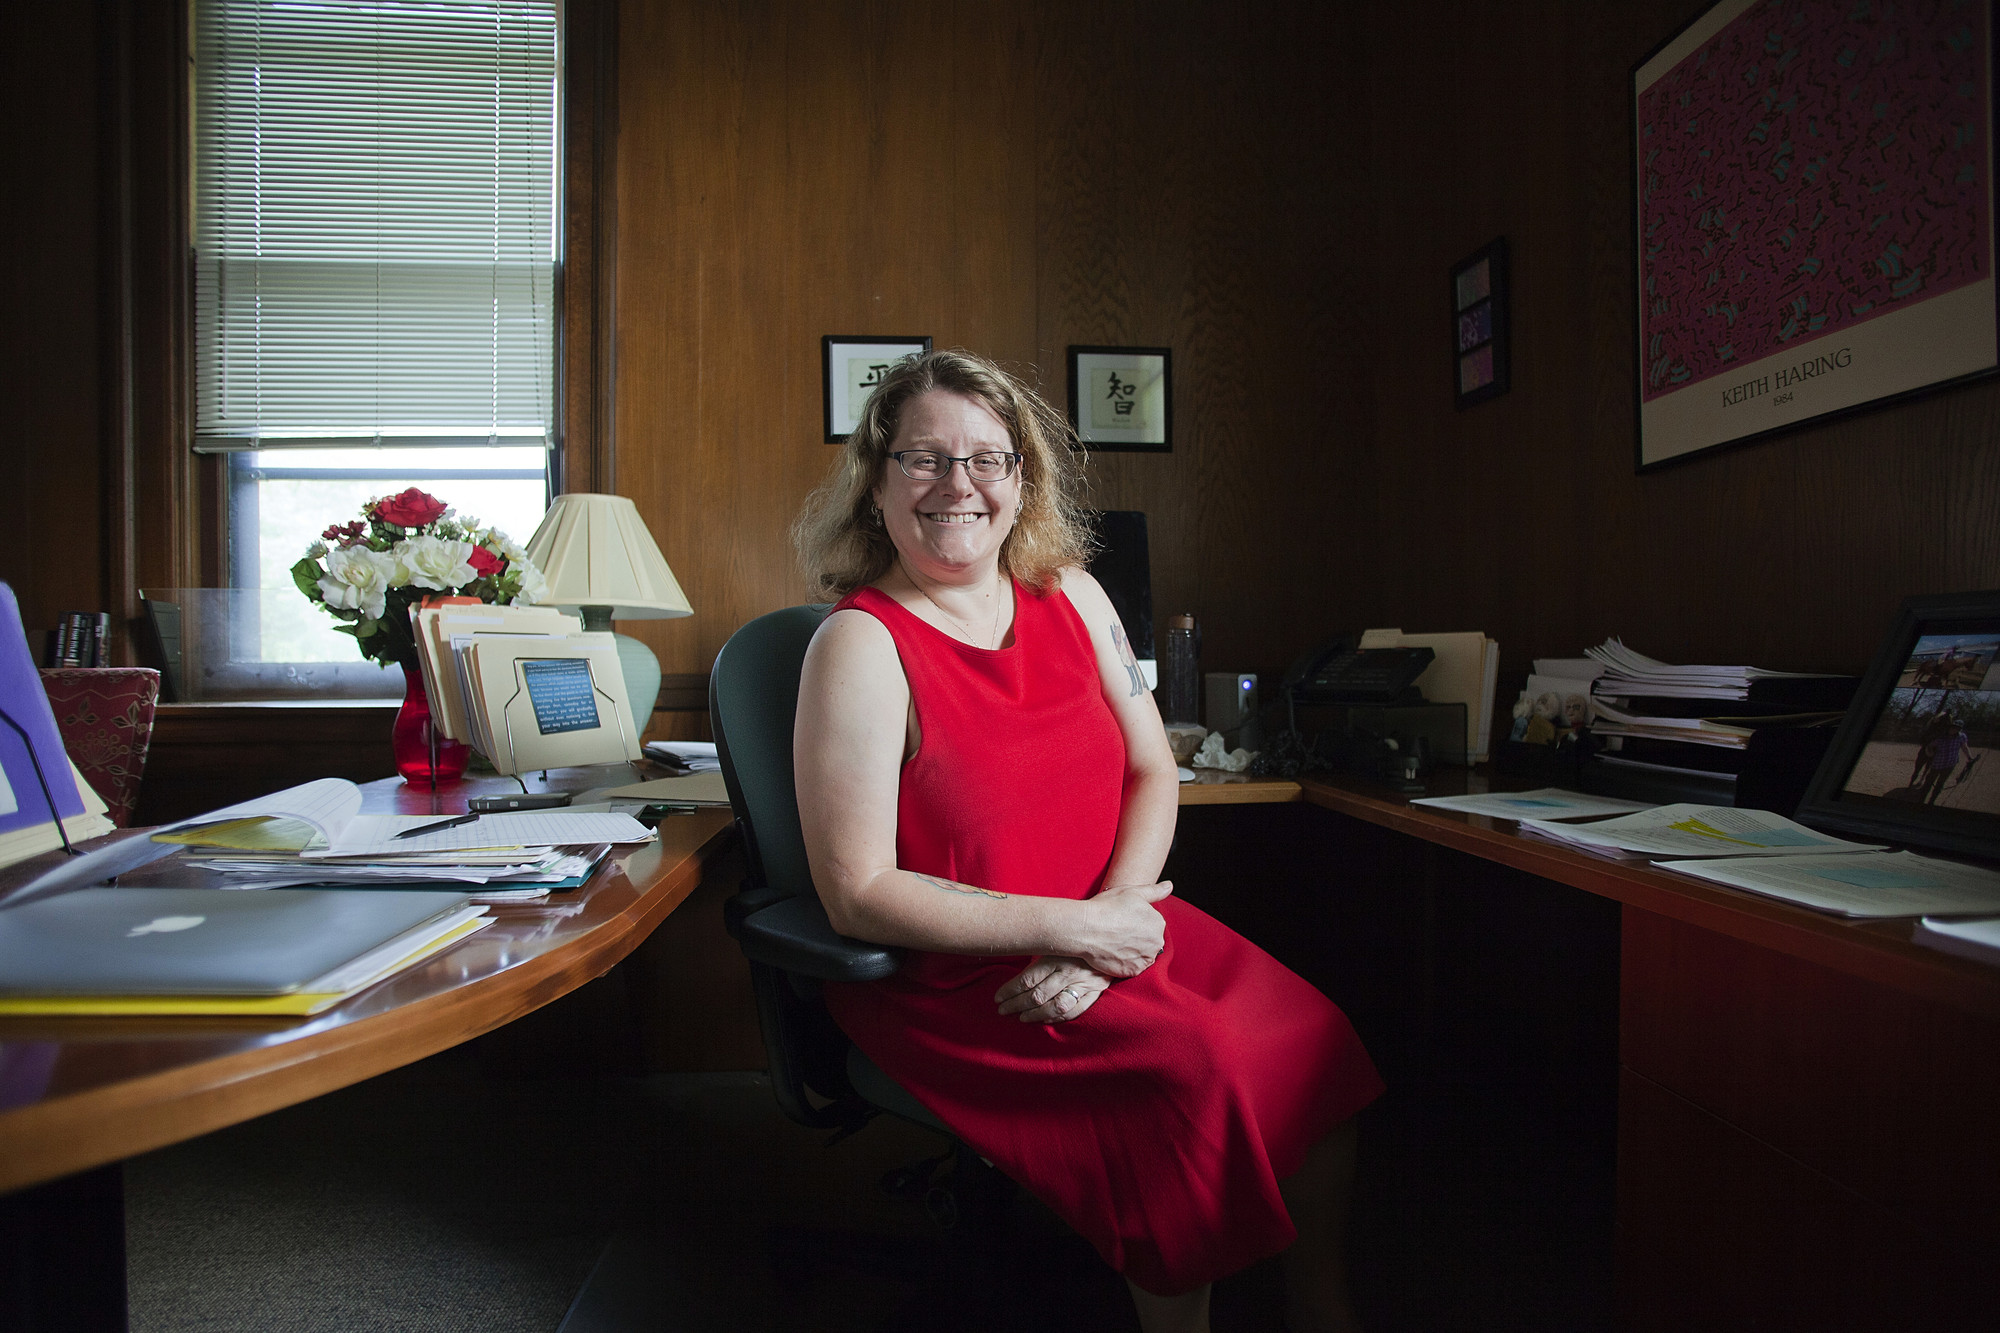 Meredith Raimondo Appointed VP and Dean of Students  Oberlin College and Conservatory